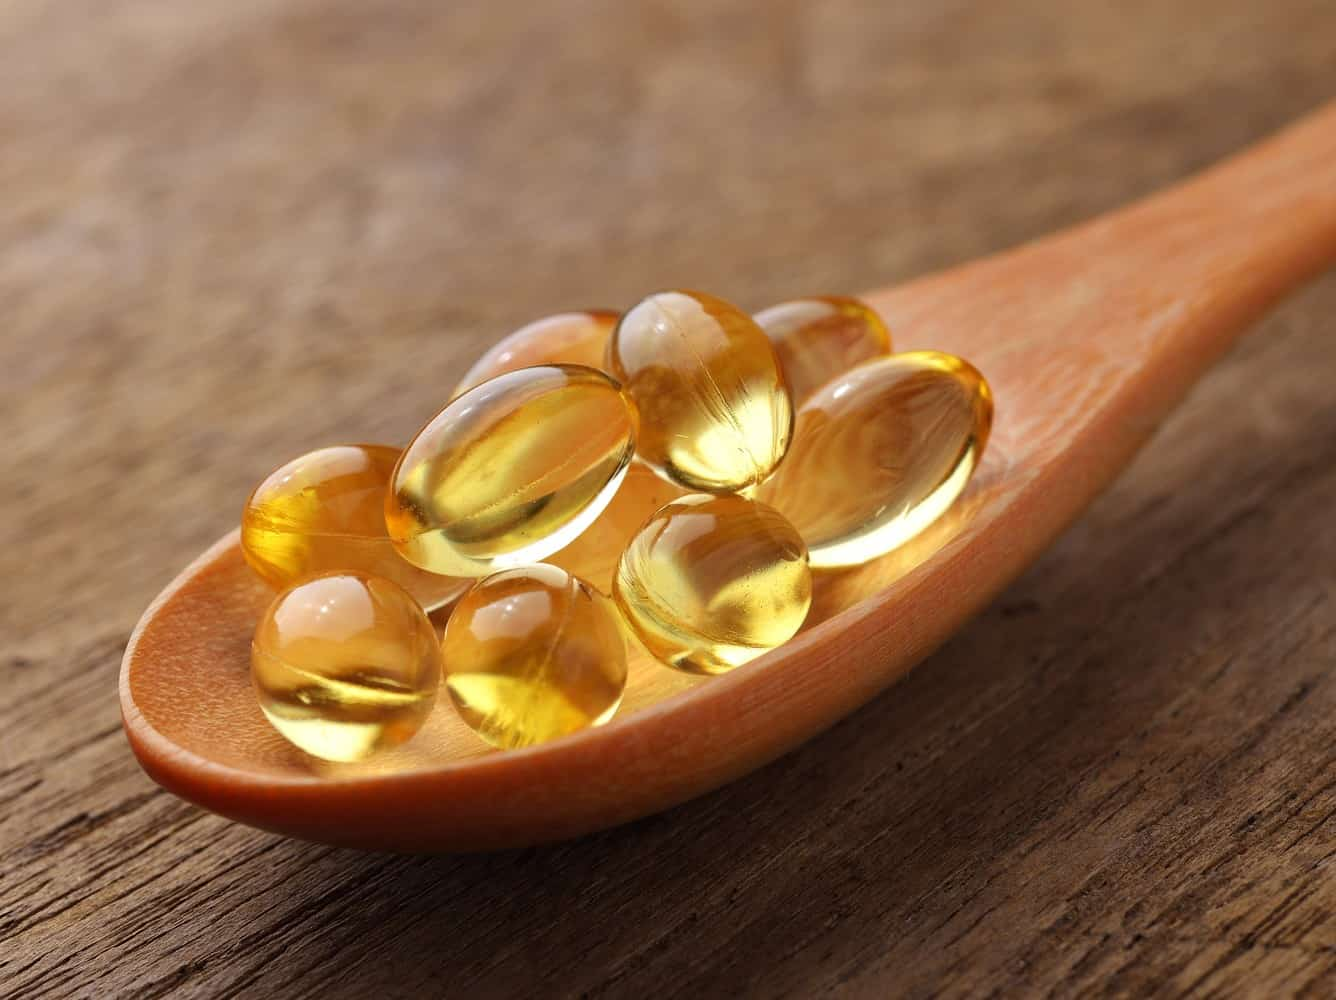 A spoonful of fish oil capsules.